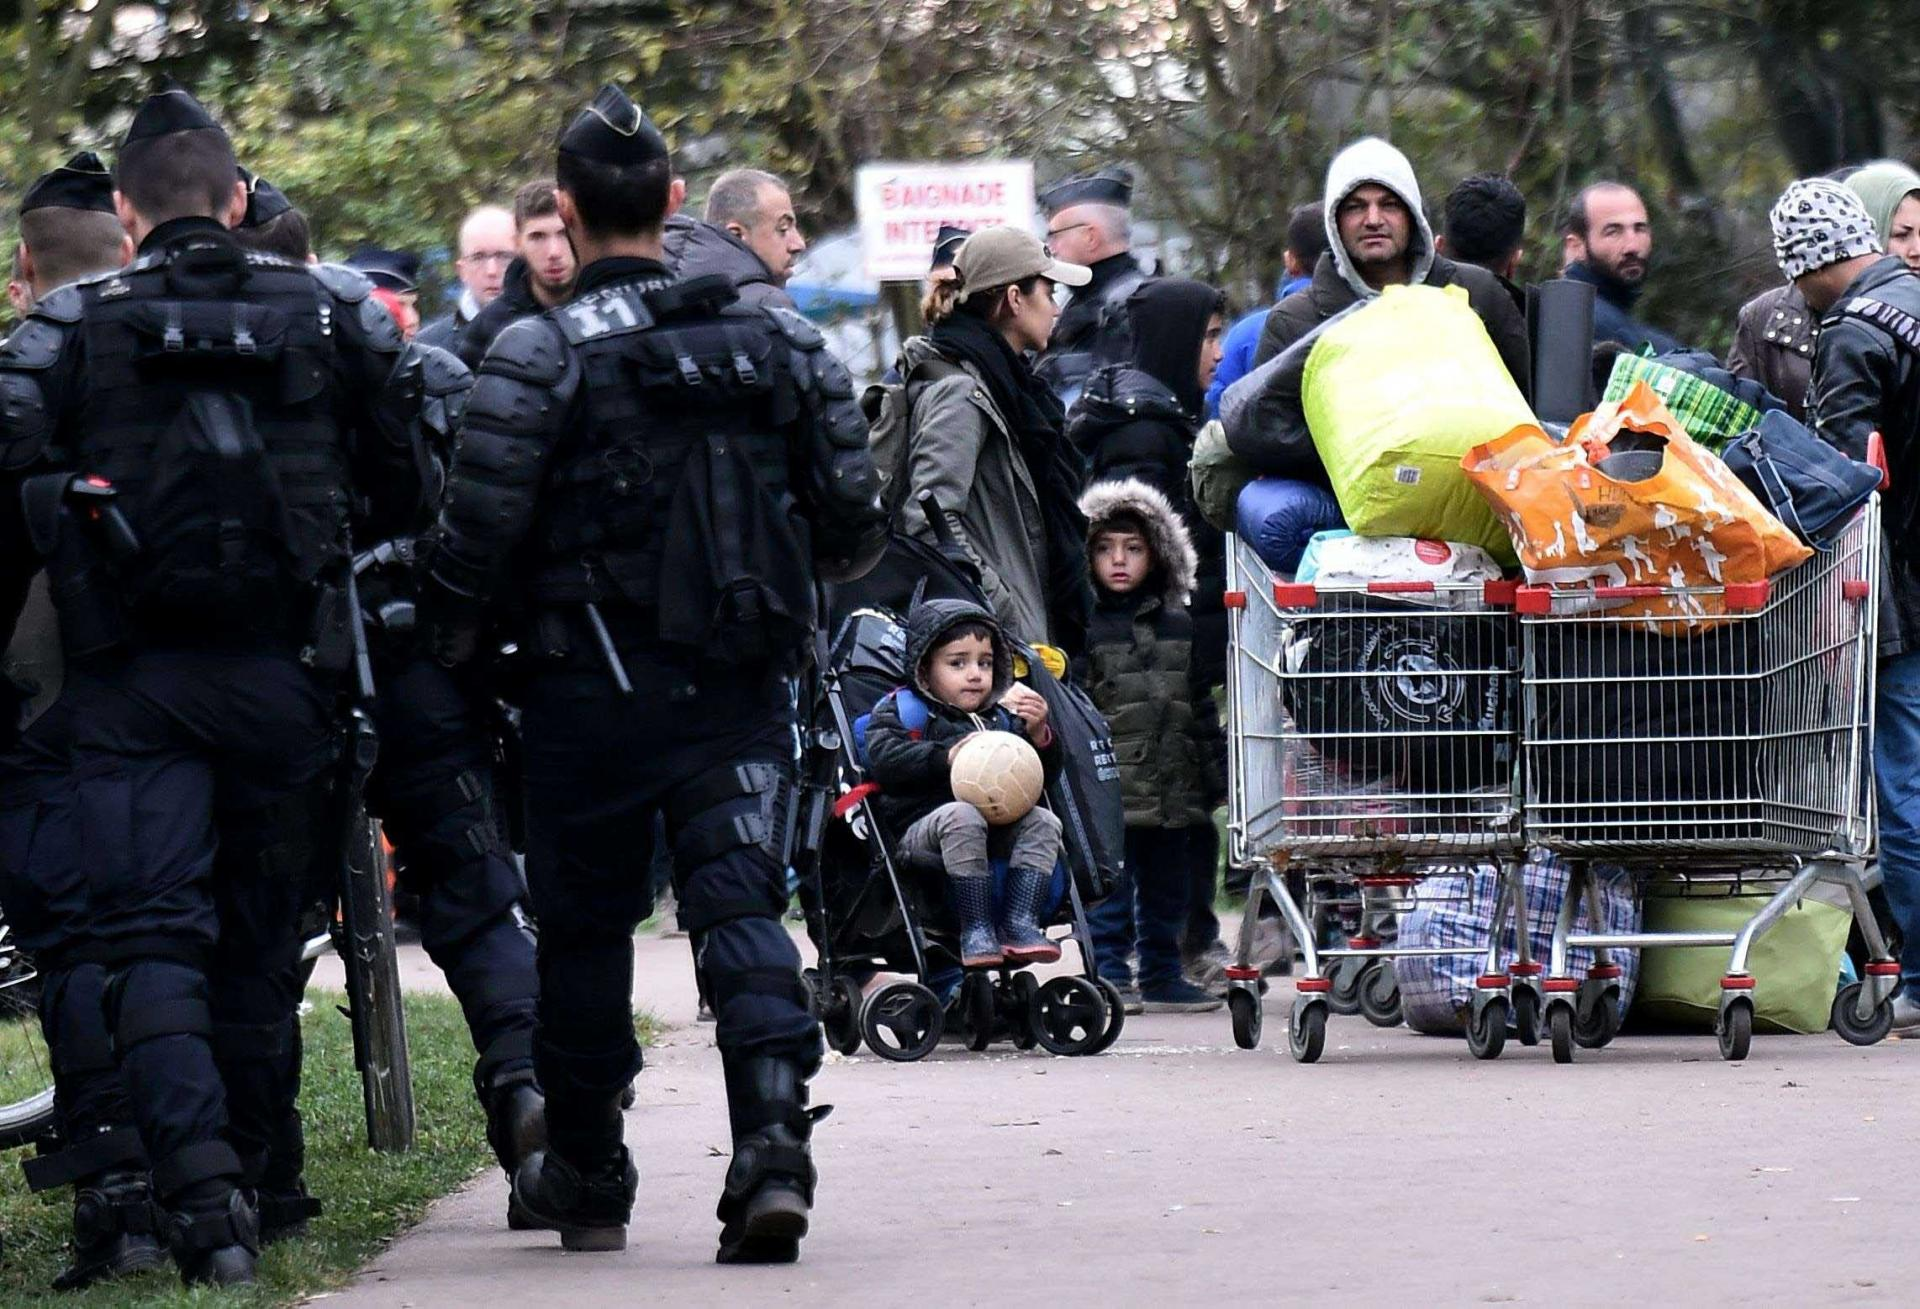 Refugees and others seeking a better life have long used the wooded, lakeside area near Dunkirk as a jumping-off point for attempted crossings